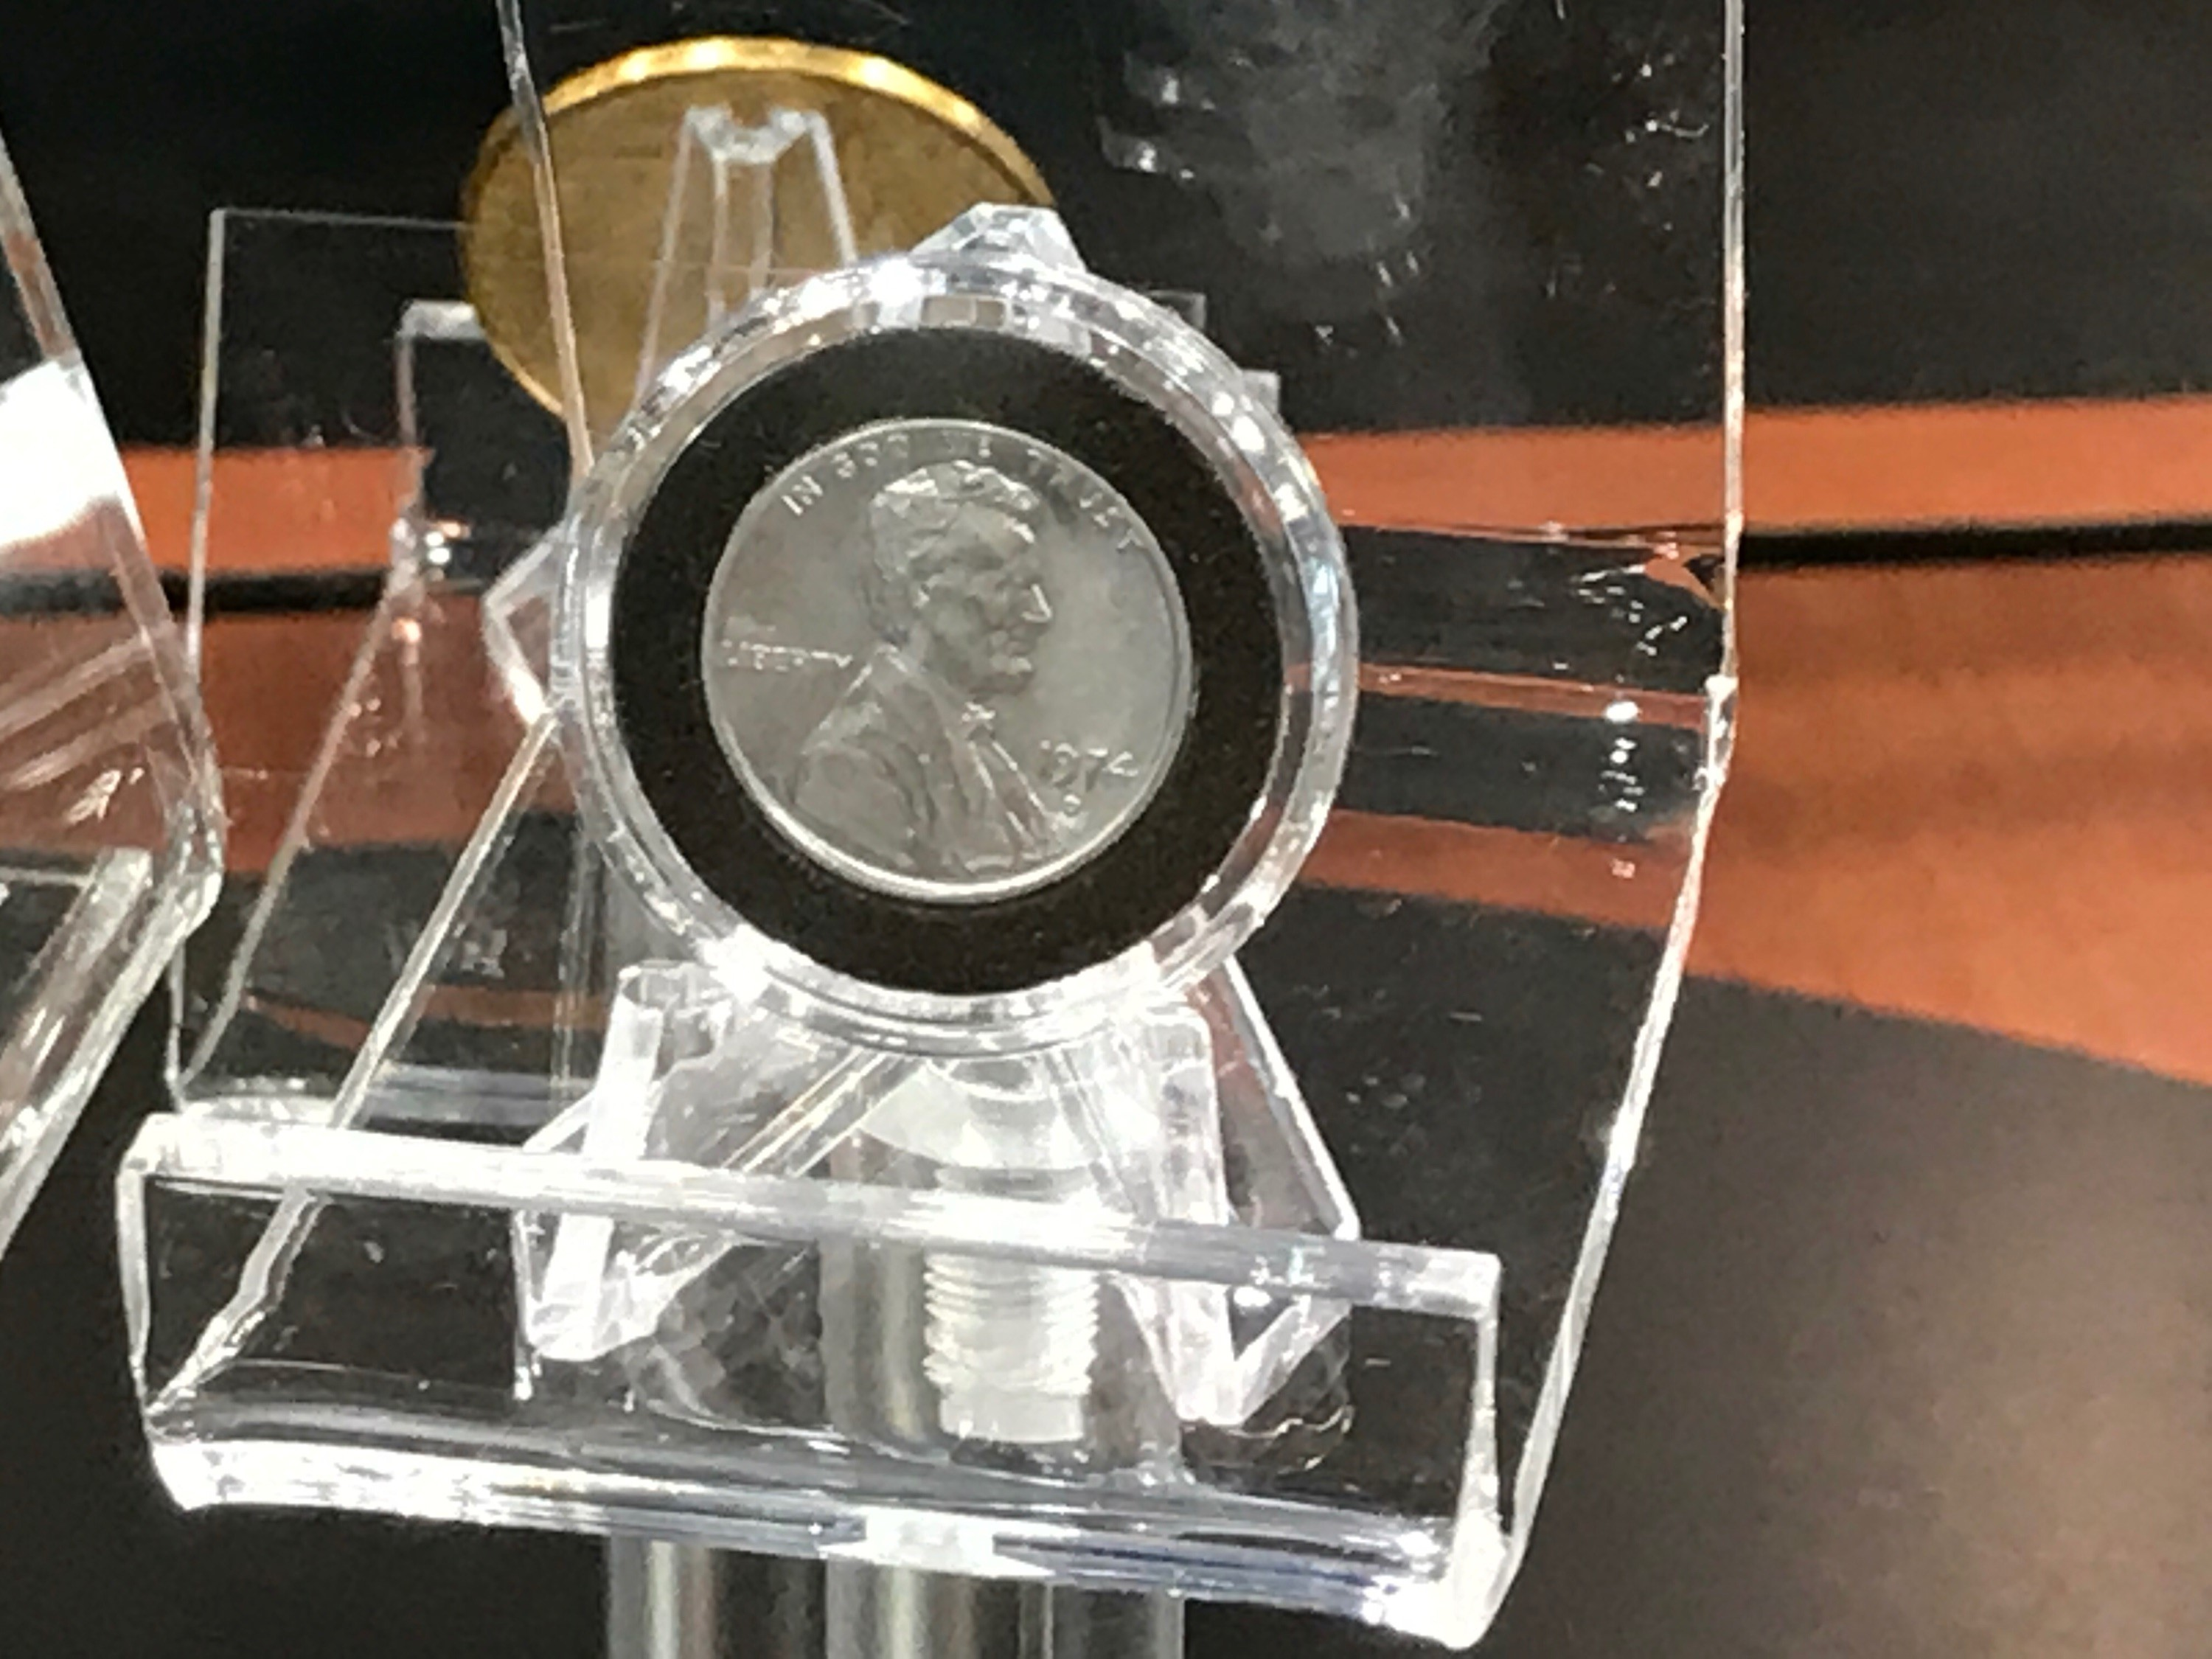 The 1974-D Aluminum Cent on display. U.S. Mint photo by Debbie Dawson.